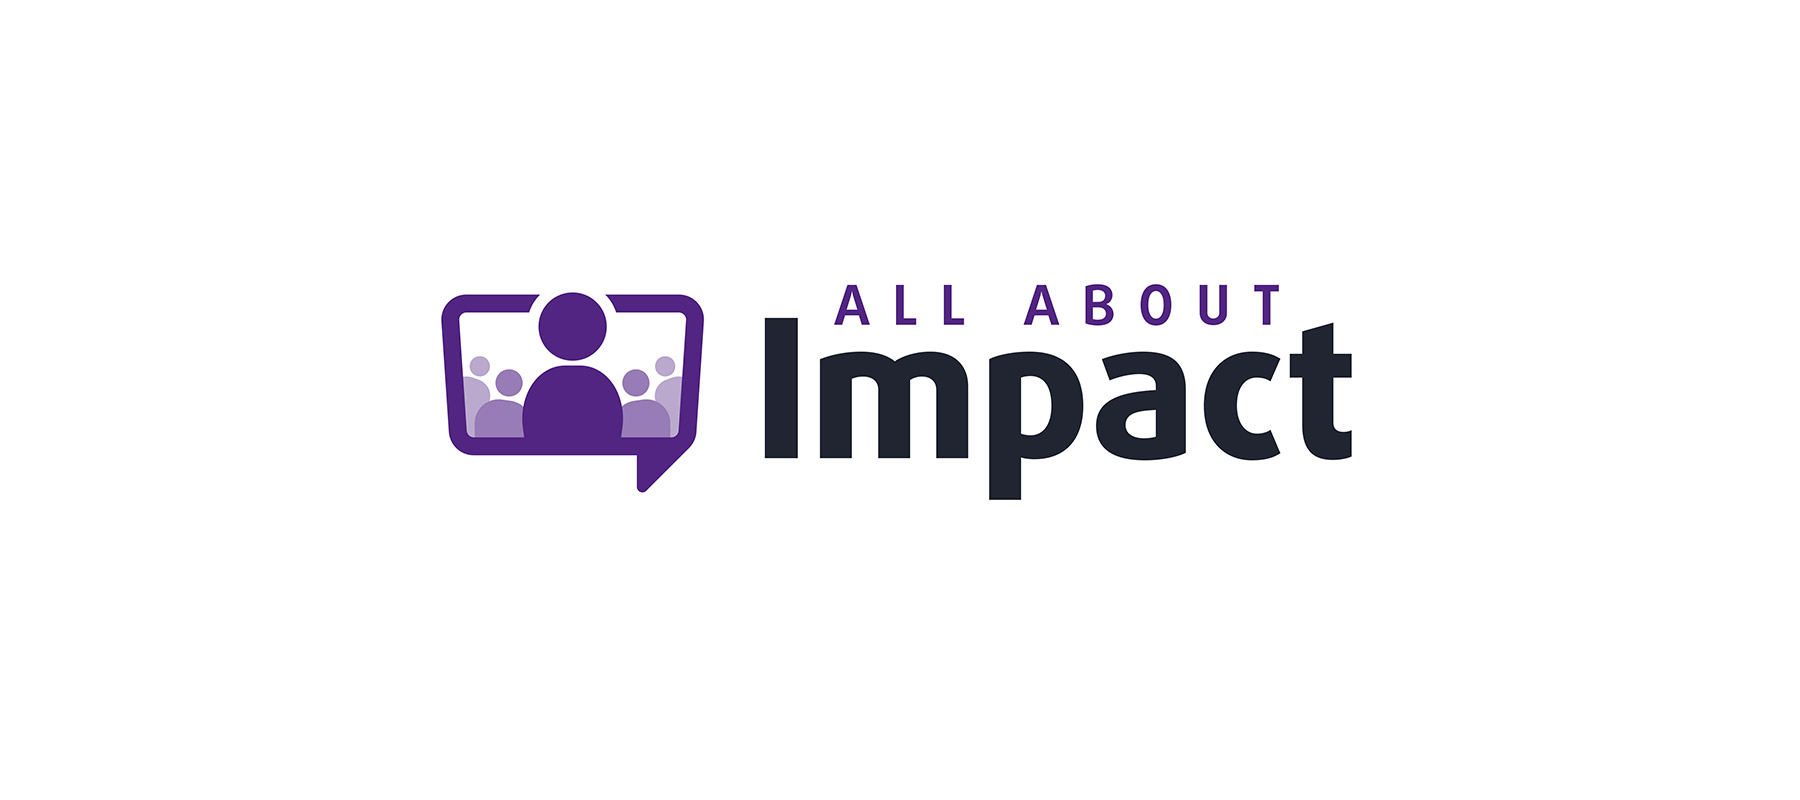 papaya-studio-all-about-impact-logo-1